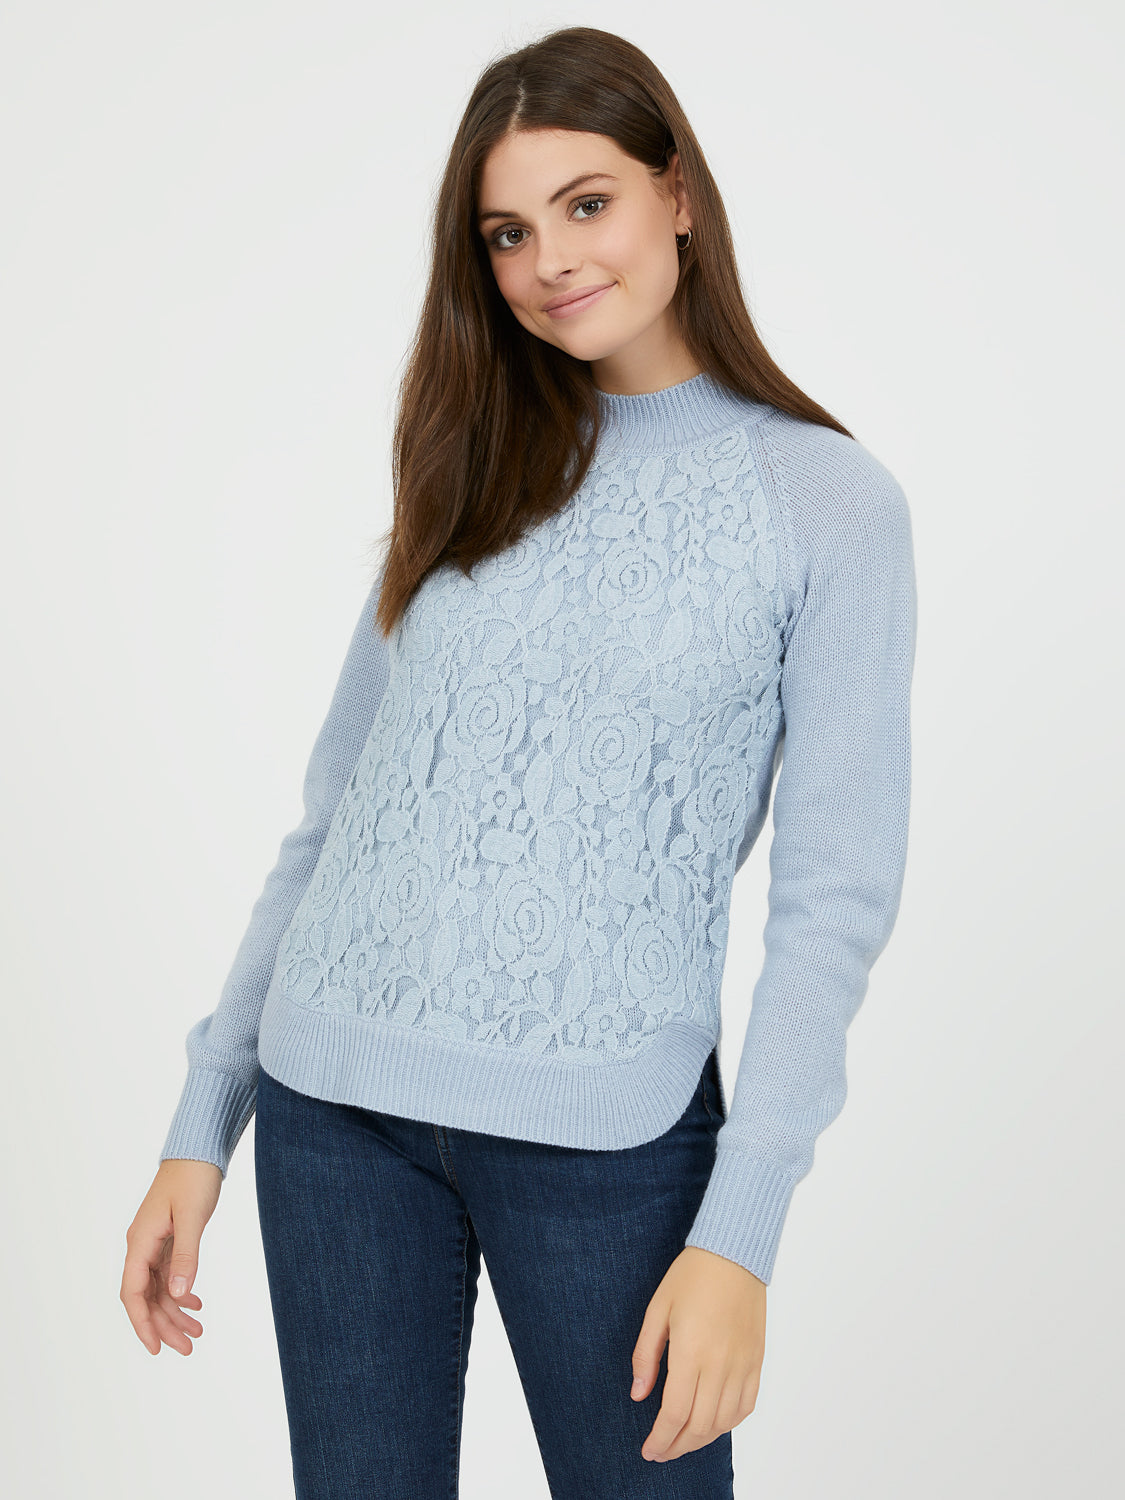 Long Sleeve Lace Appliqué Sweater